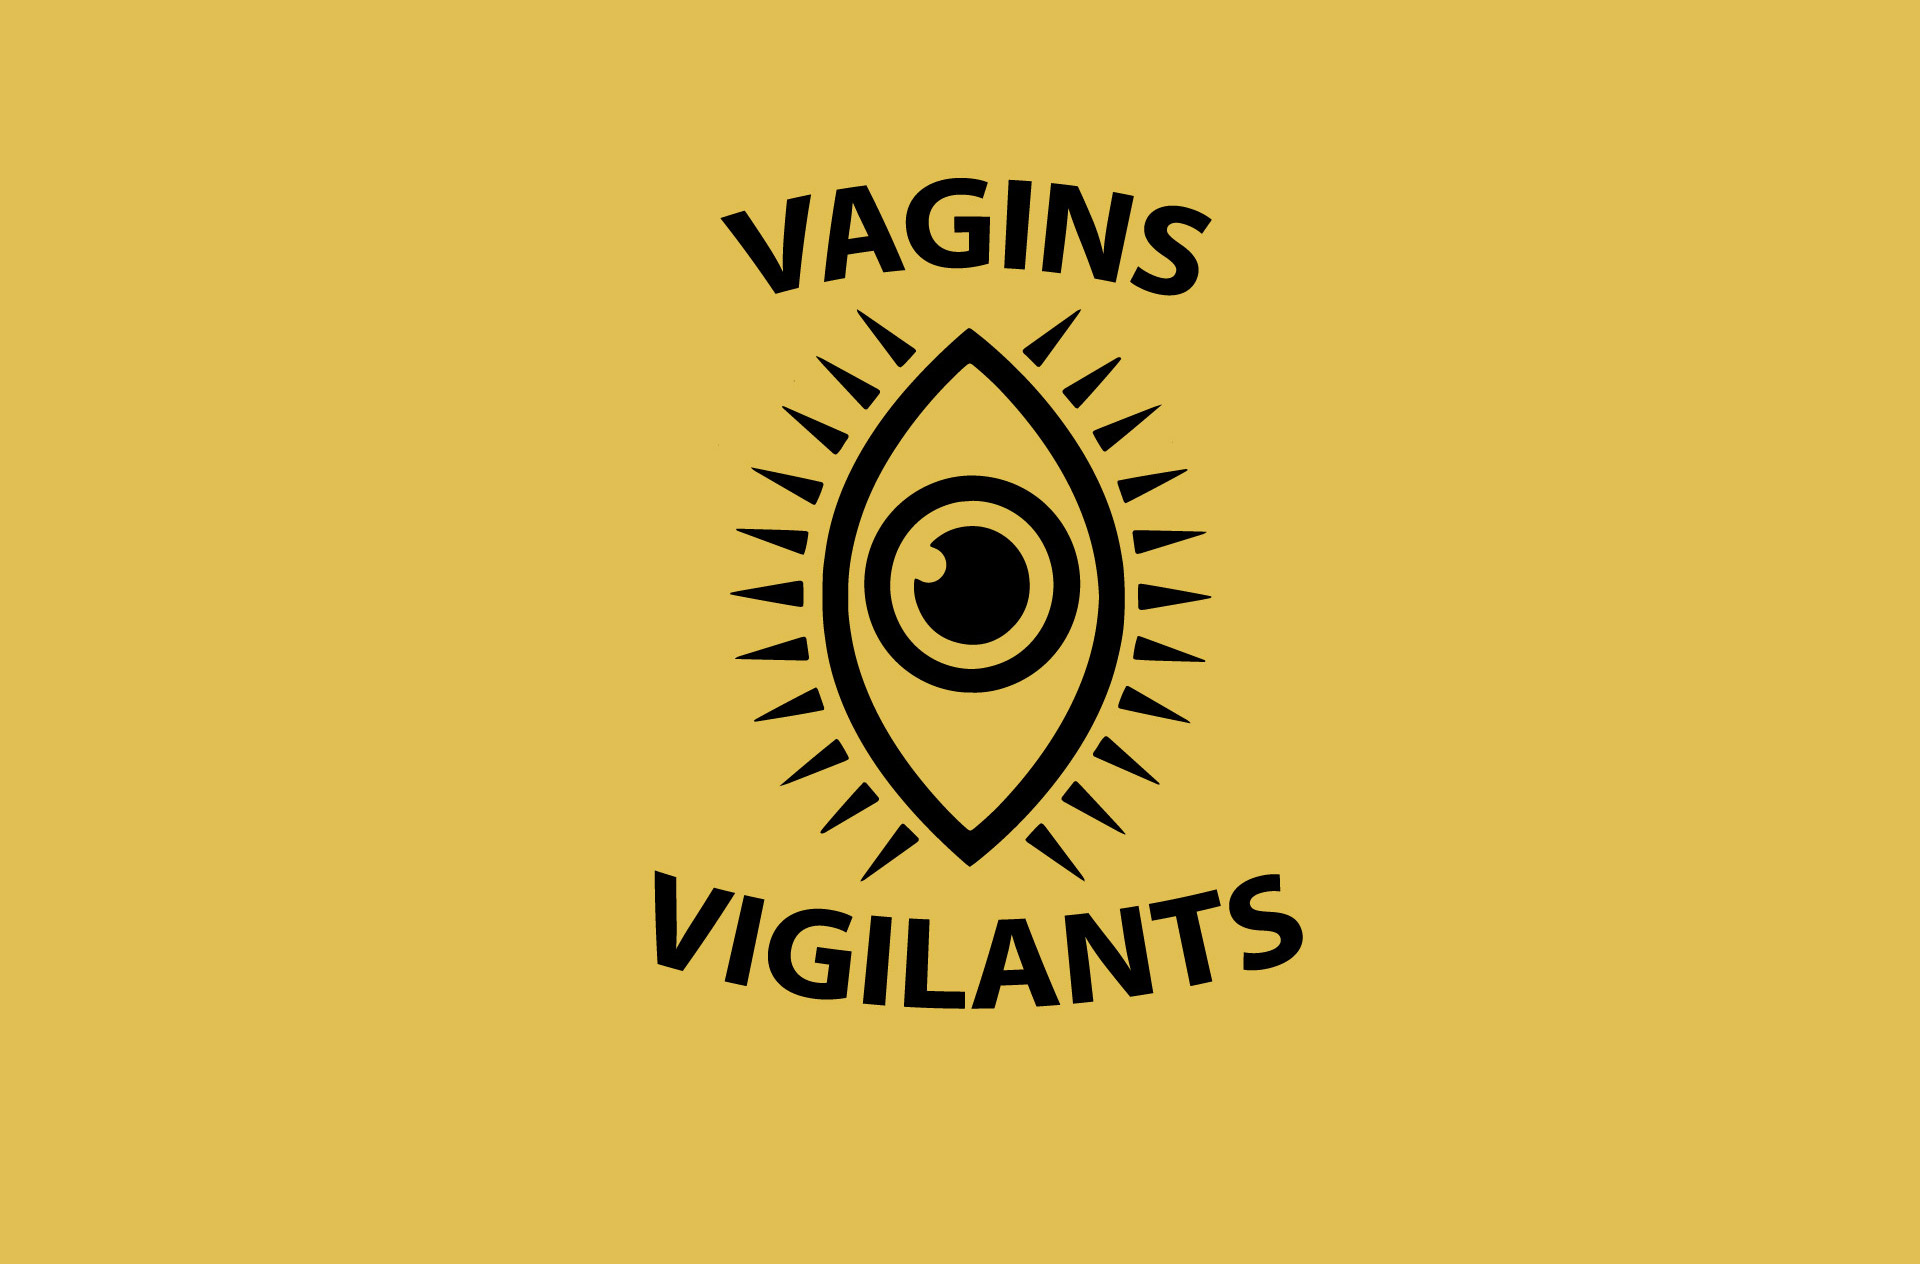 Vagins vigilants